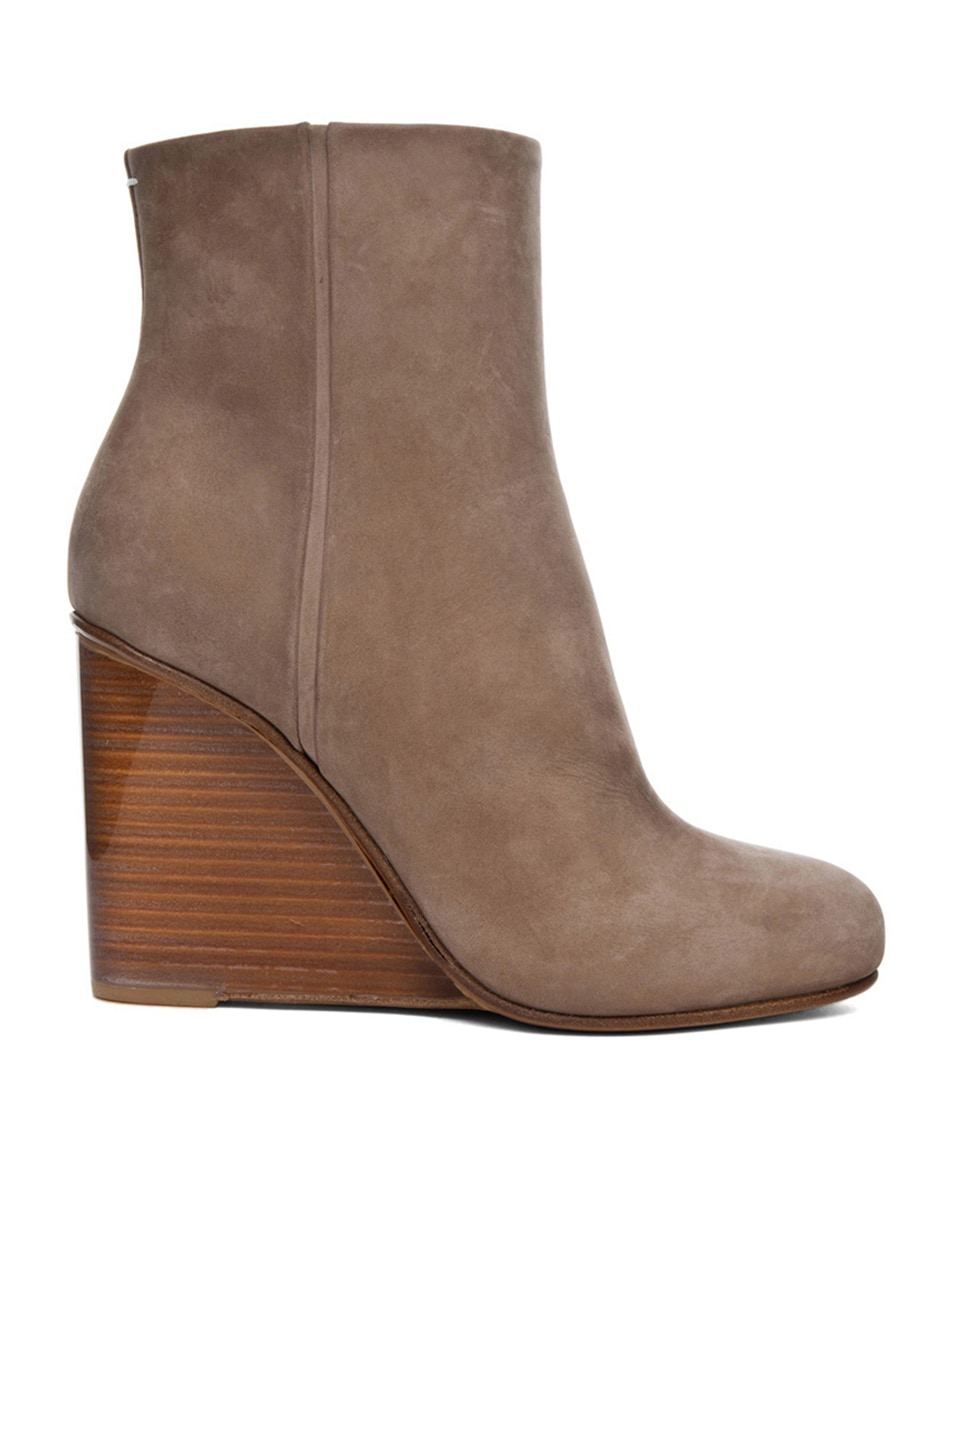 Image 1 of Maison Margiela New Plexi Suede  Wedge Bootie in Mud